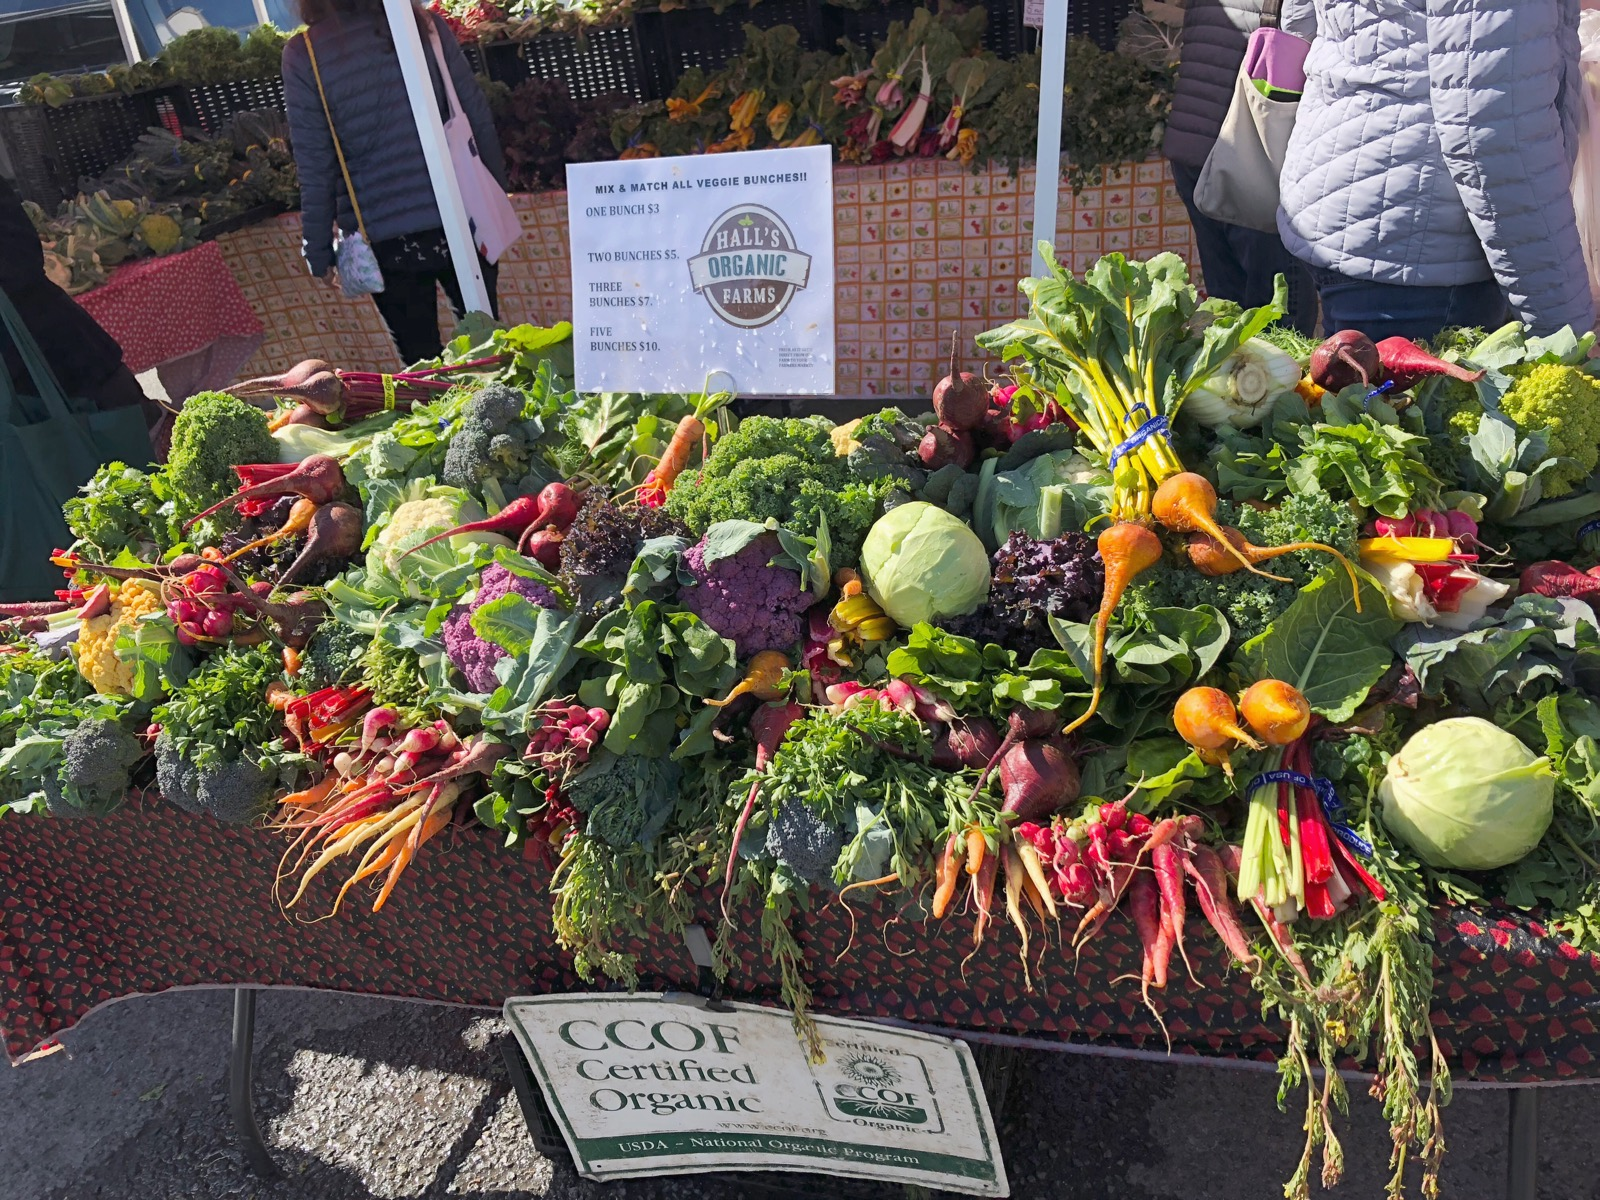 Mindful eating starts with your ingredients, and there's no better way to nourish yourself than with local farmers market fare.